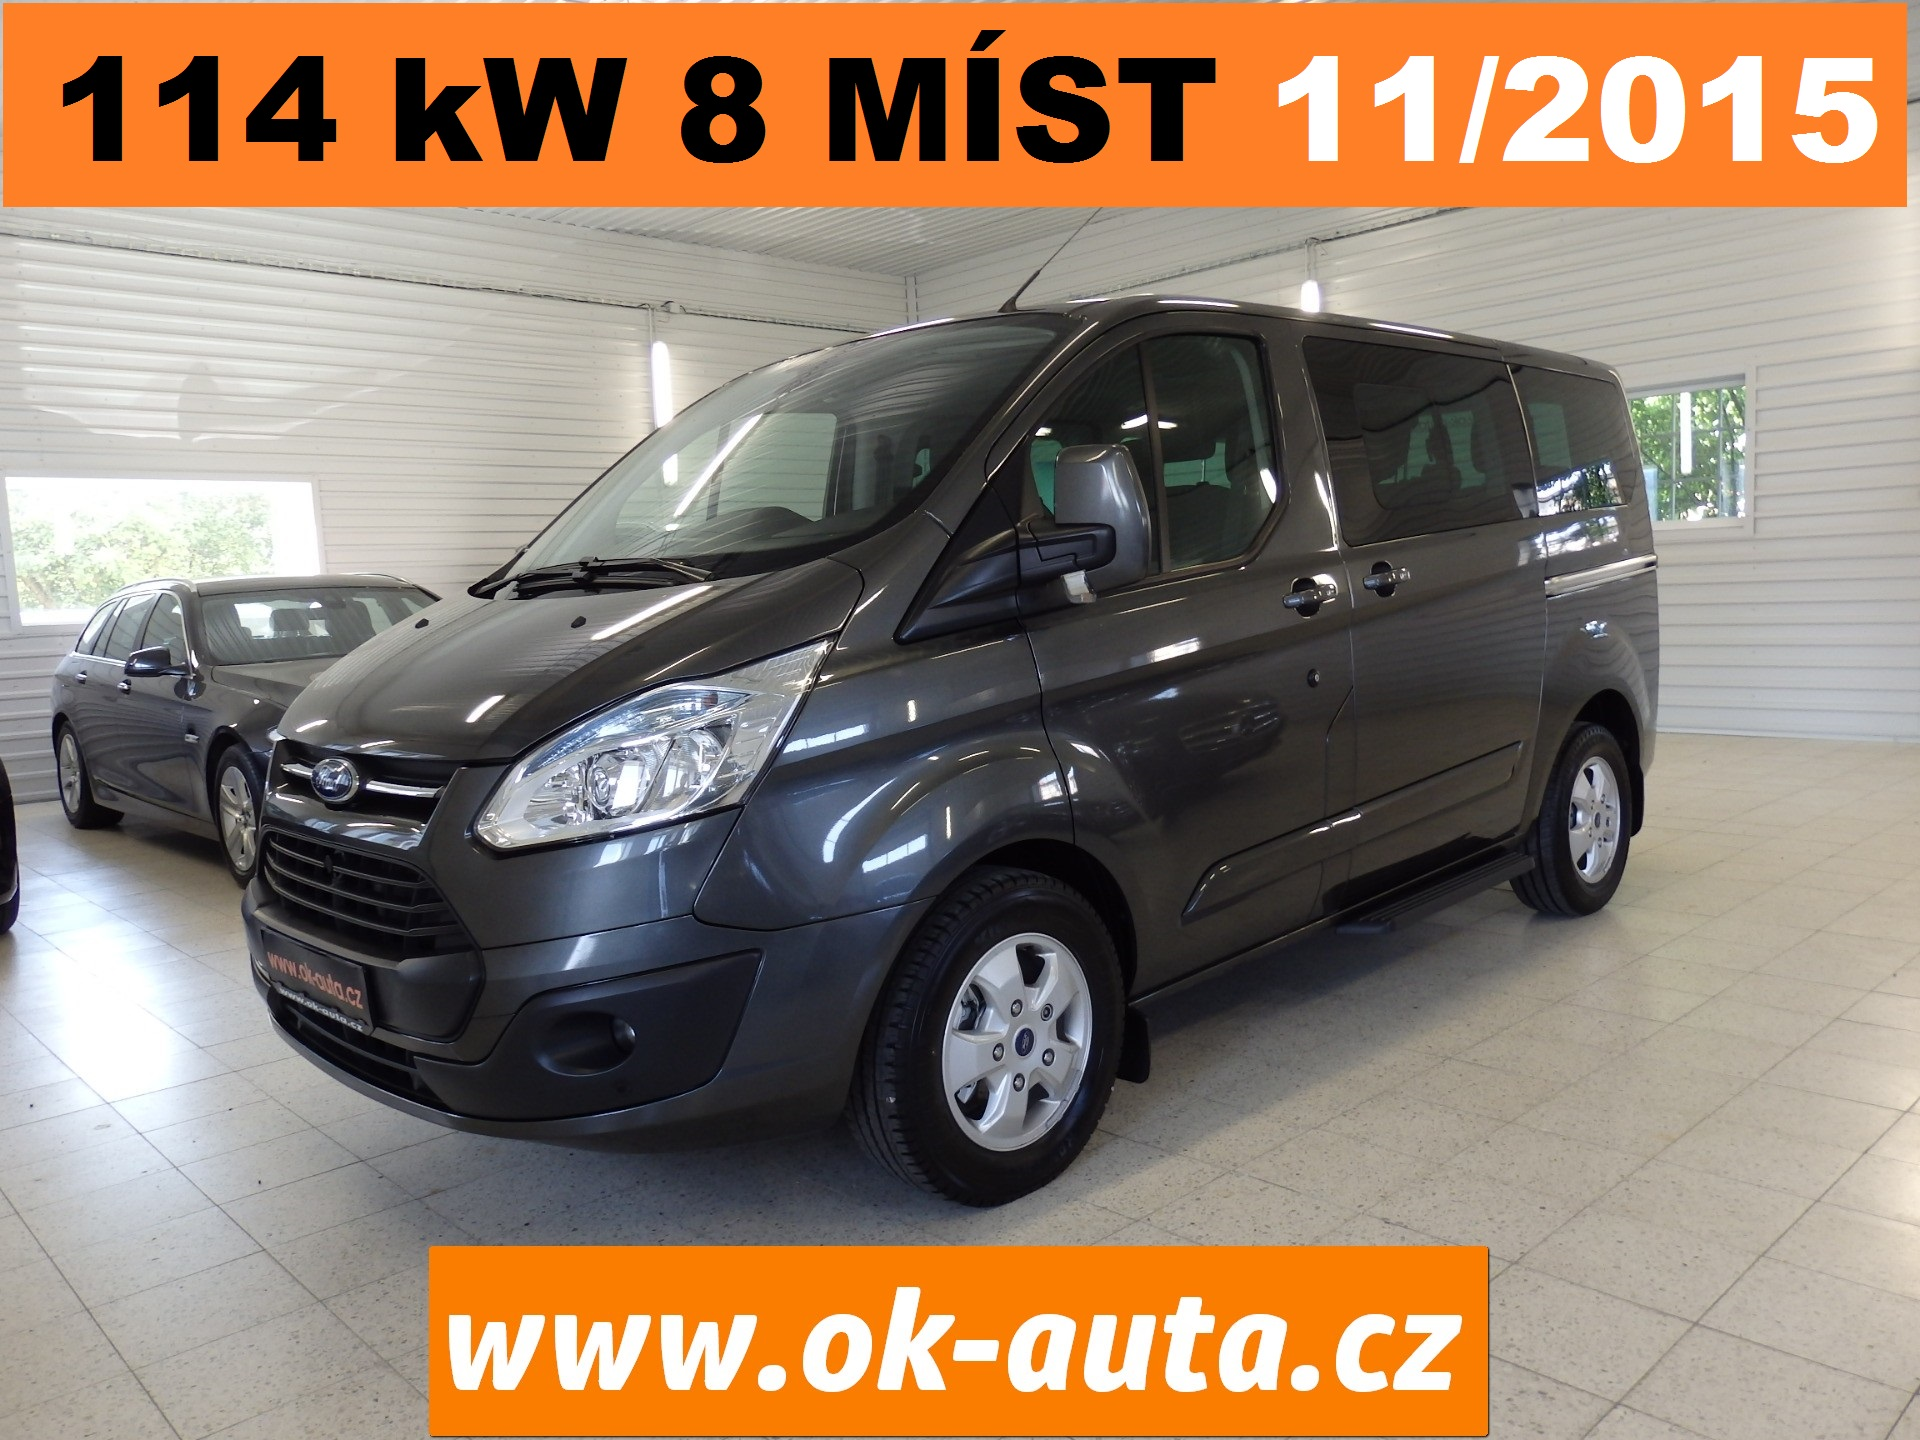 Ford Tourneo Custom 2.2 TDCI 114 kW  11/2015